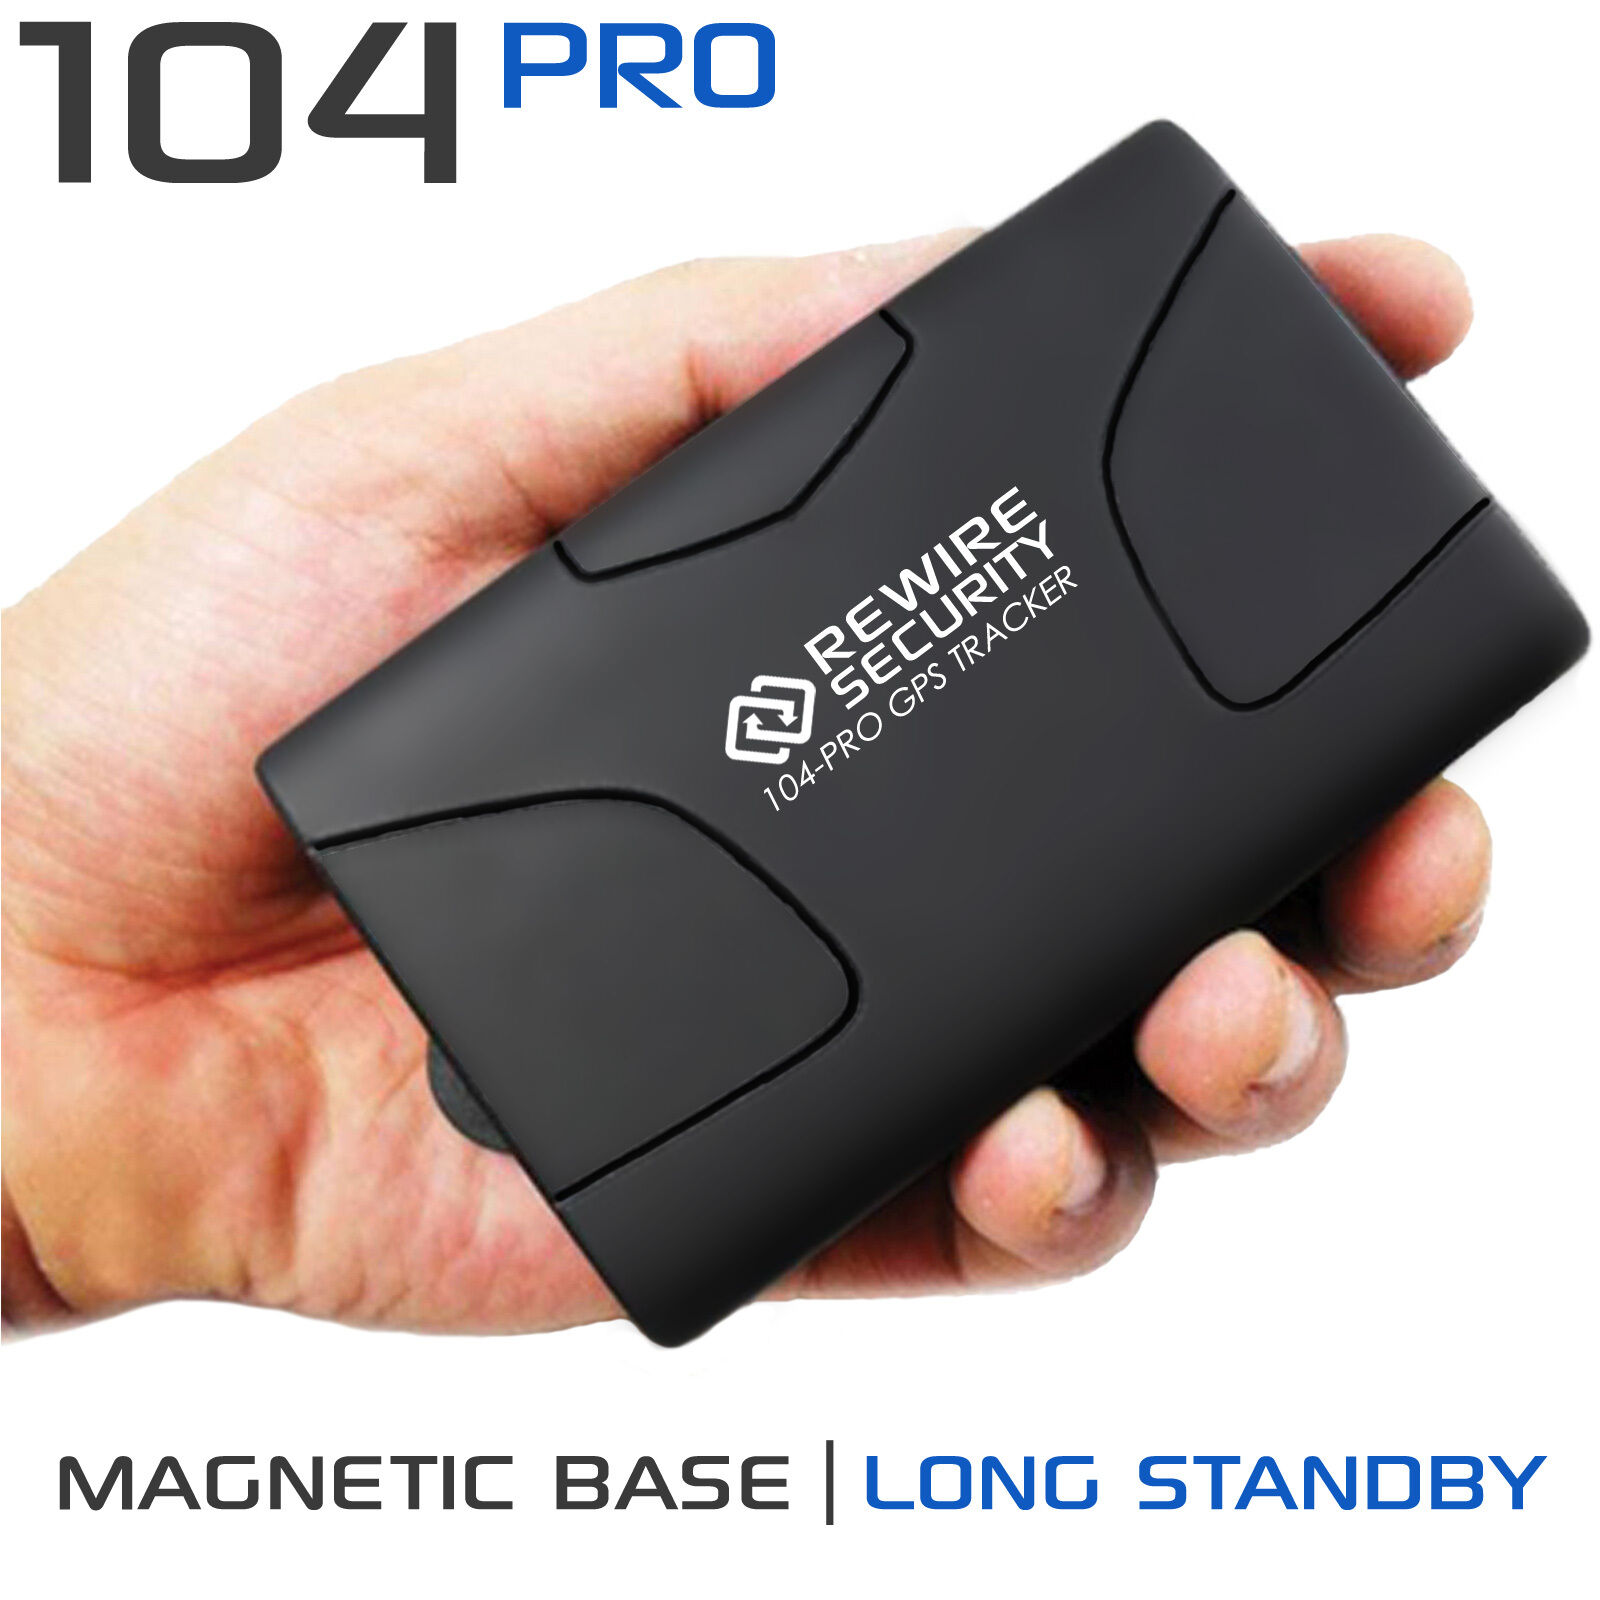 Tracking Devices 104 PRO Gps Tracker Tracking System Car Vehicle